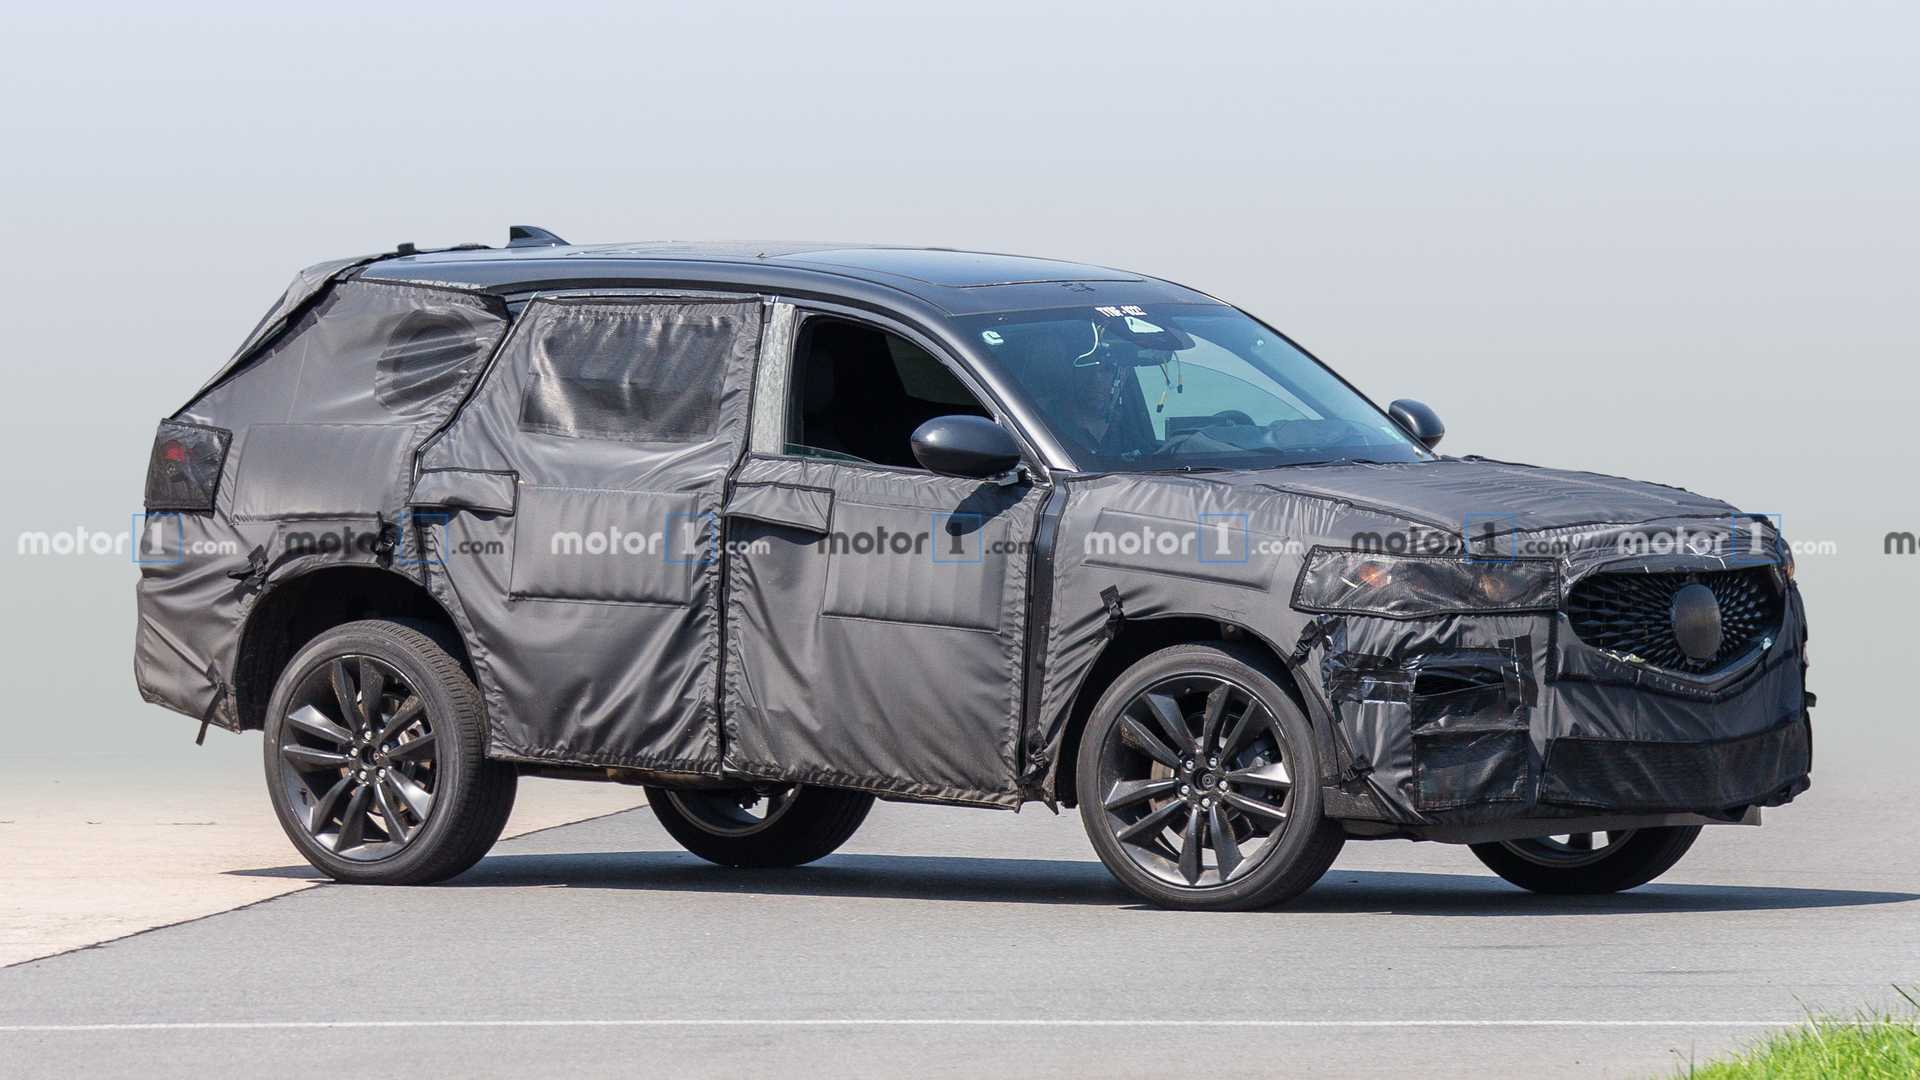 52 The Best Acura Suv 2020 Model